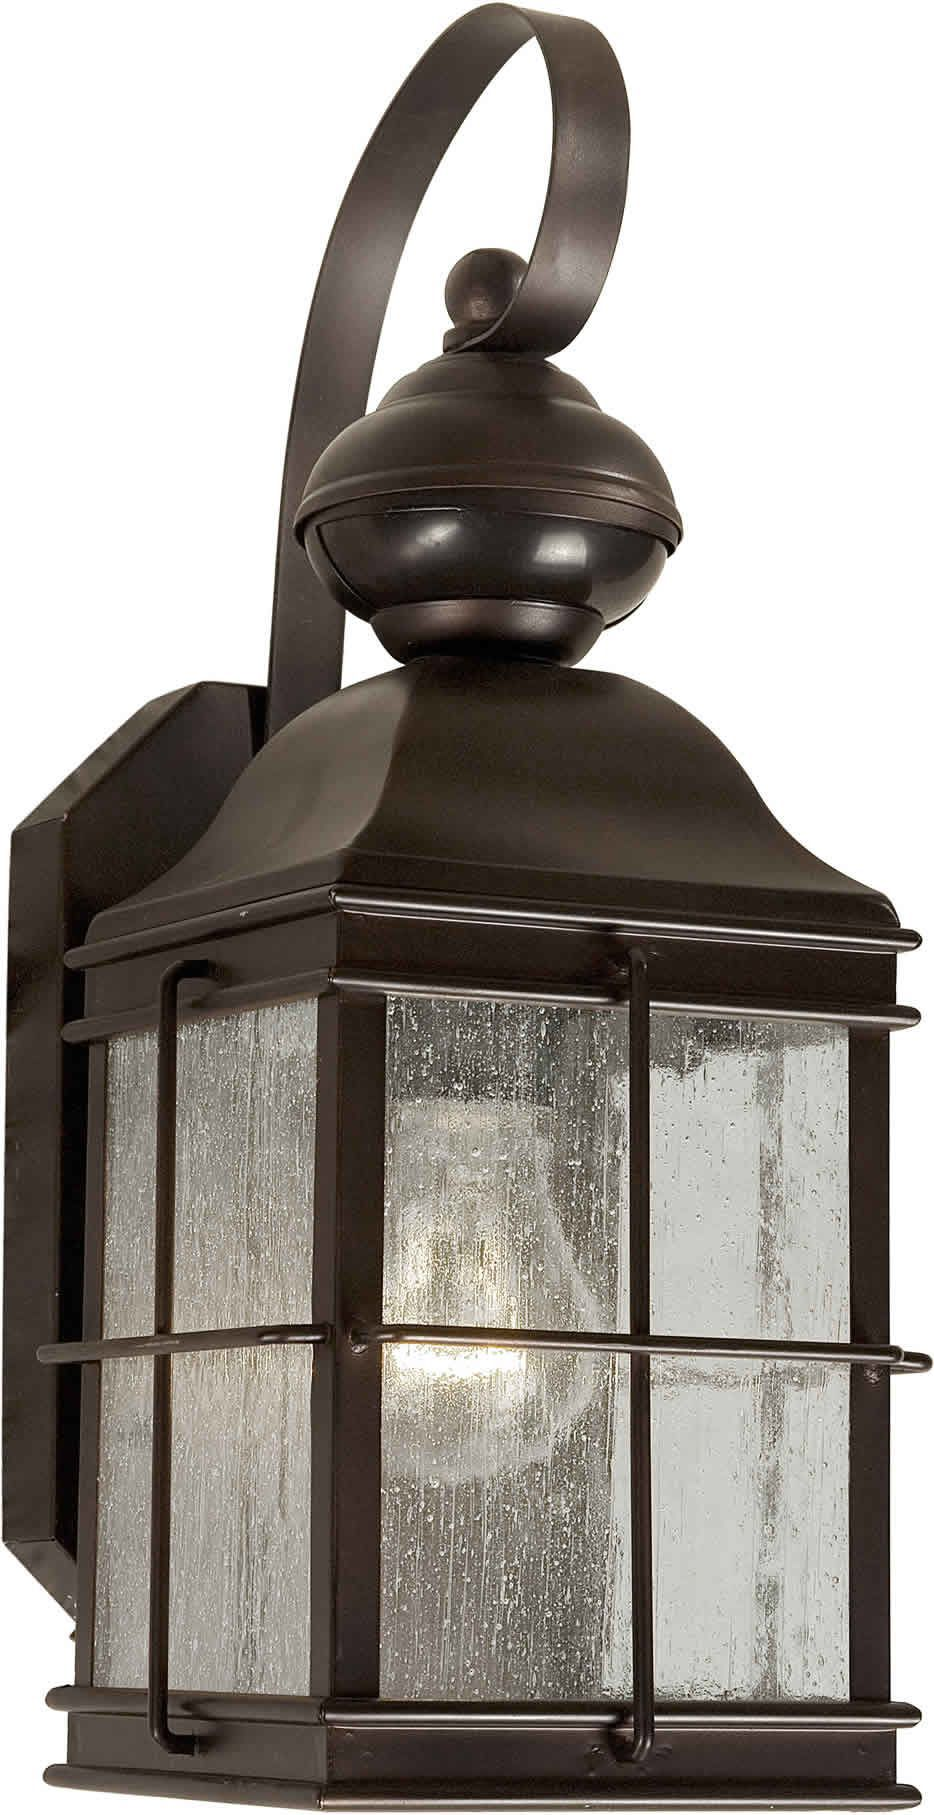 Chloe loft industrial 2 light oil rubbed bronze wall sconce free - Buy The Forte Lighting Antique Bronze Direct Shop For The Forte Lighting Antique Bronze Energy Efficient Outdoor Wall Sconce And Save